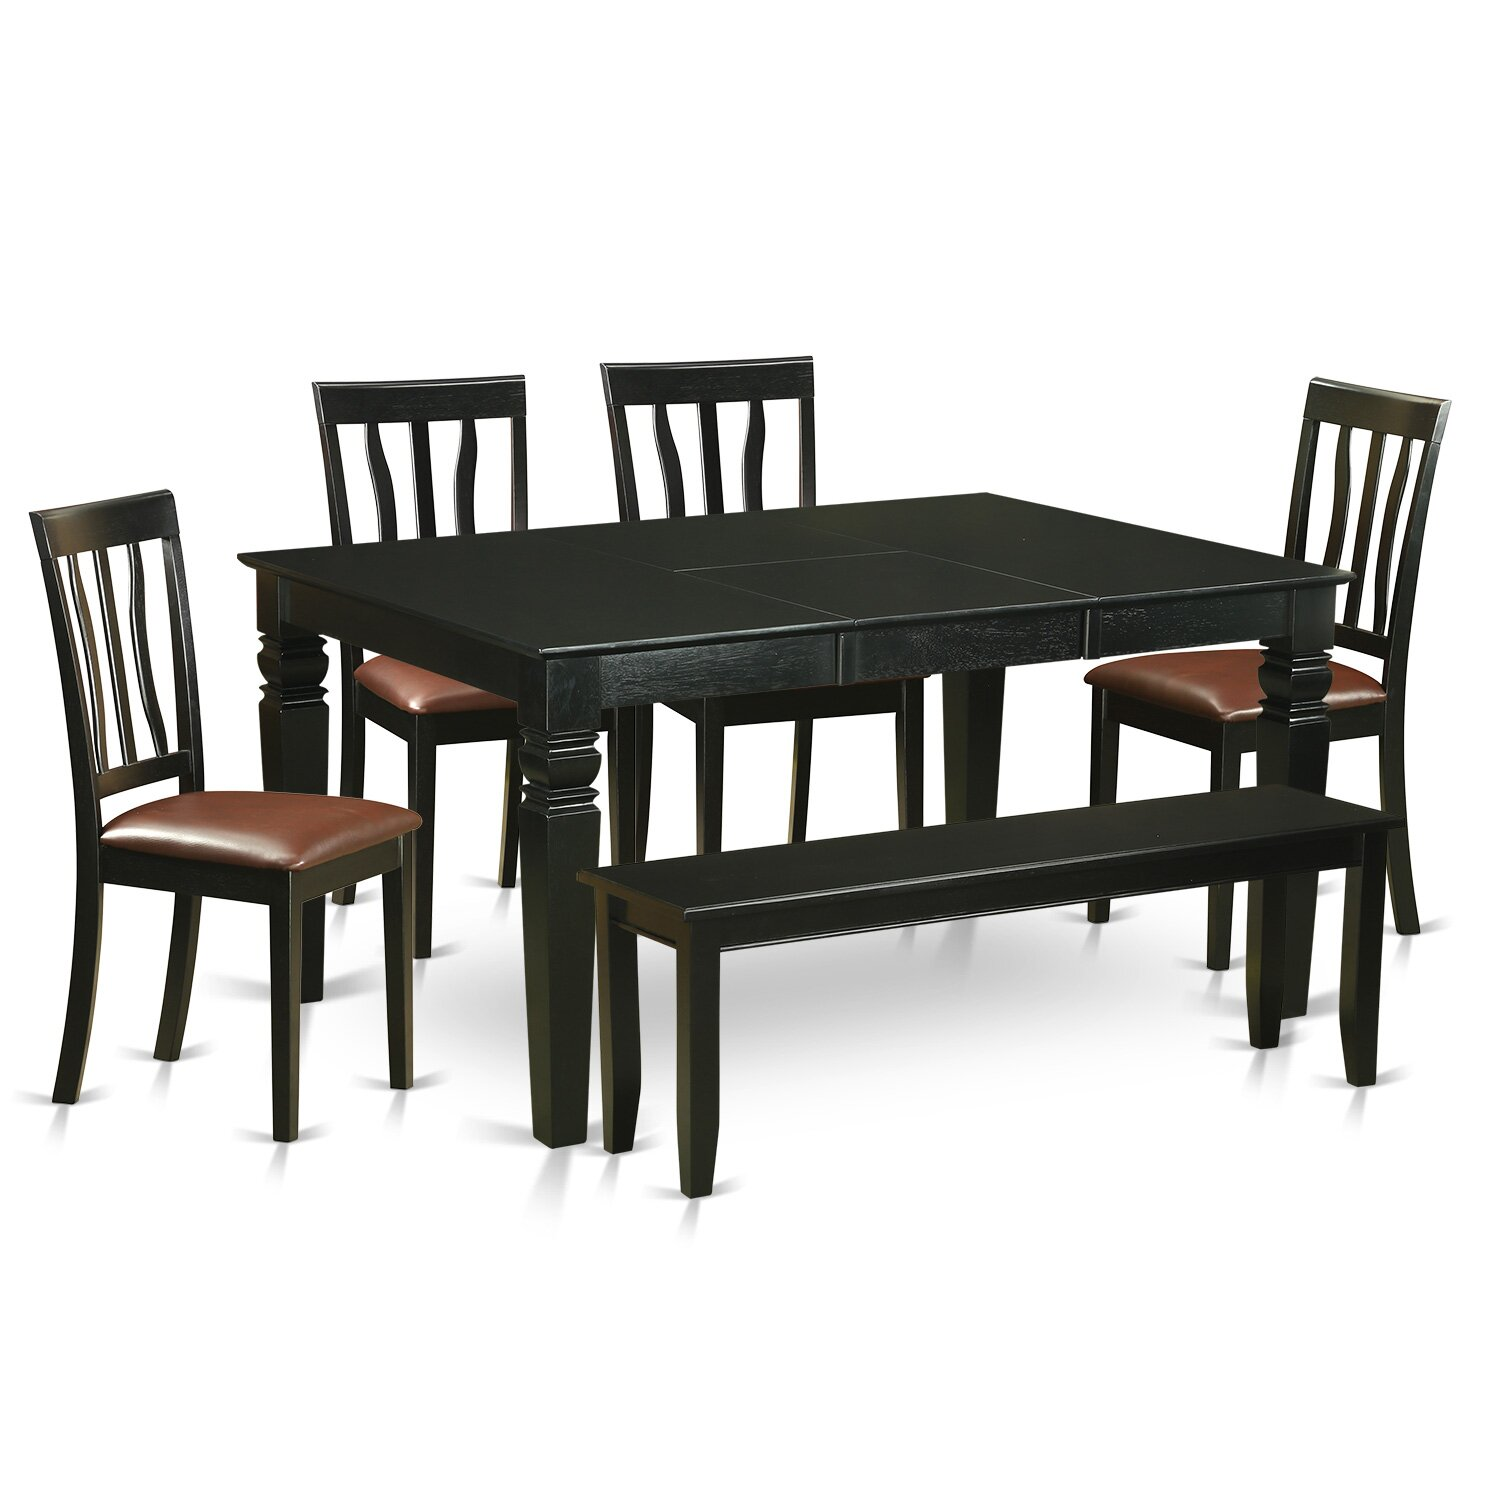 Wooden importers weston 6 piece dining set wayfair Dining table and bench set